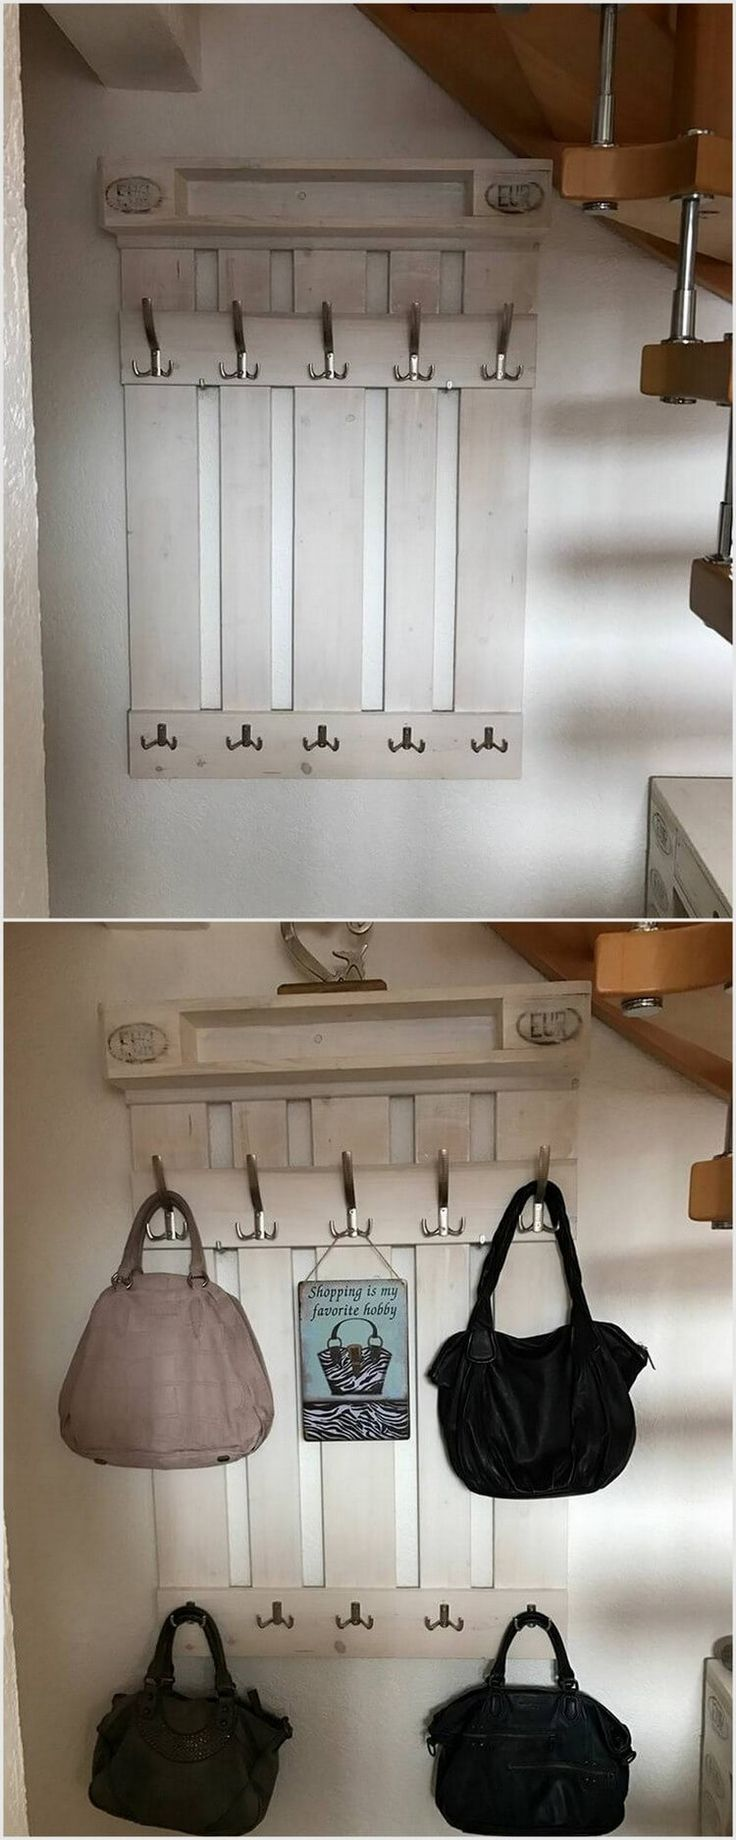 I don't like this style but would like this many hooks near entry